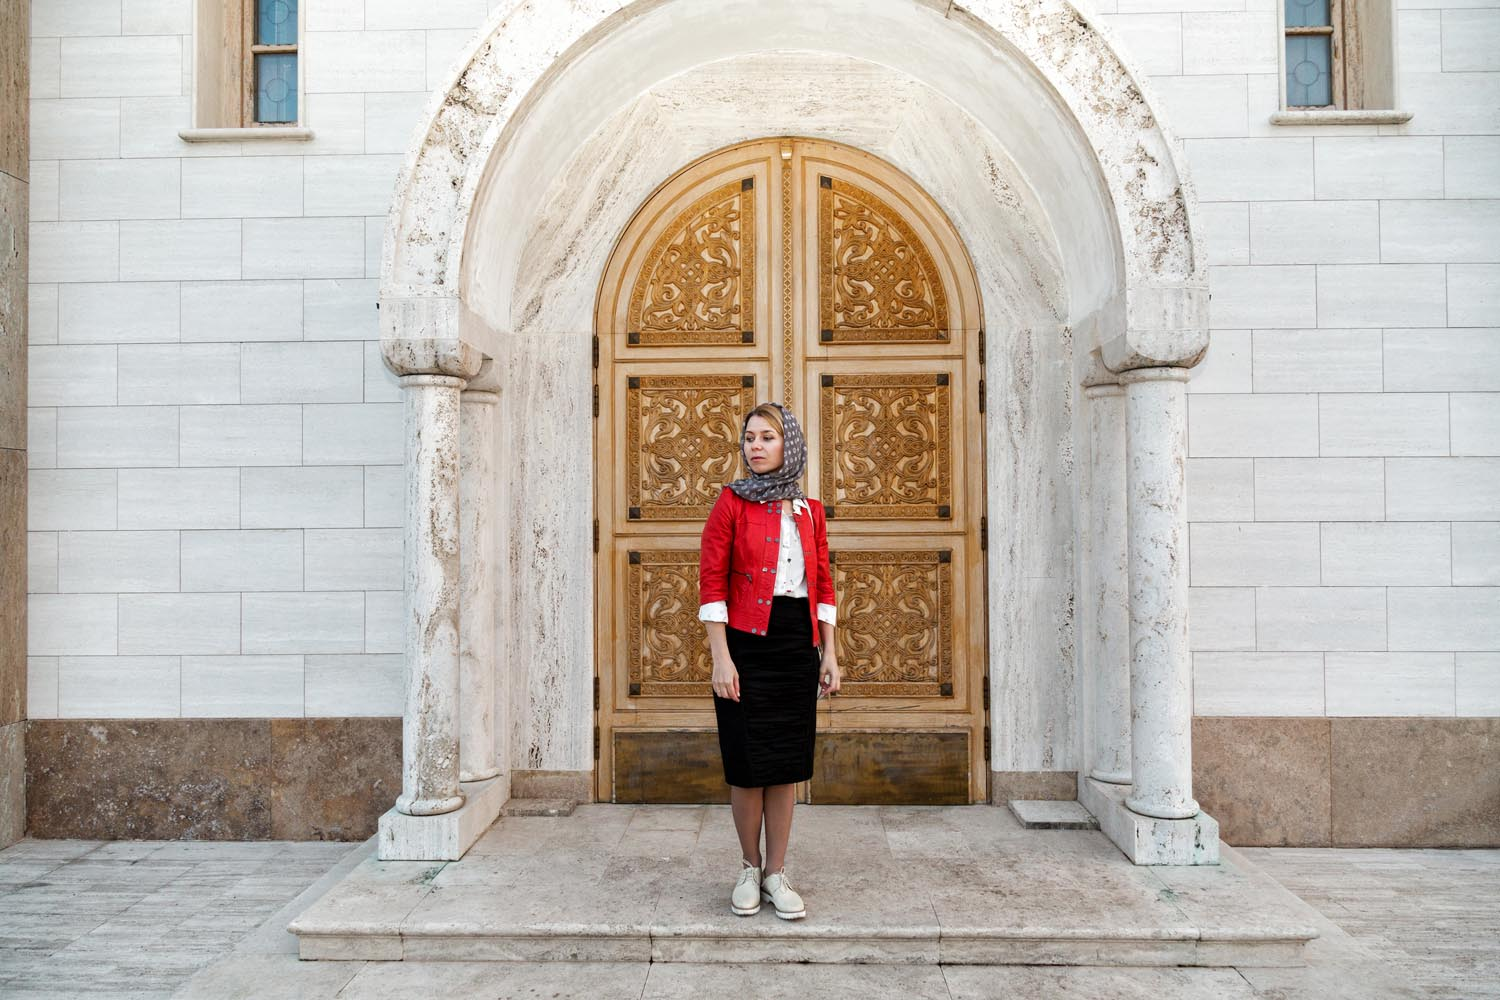 Rome, Italy, Apr 2018.  Saint Catherine Church. Aleksandra, a Ukrainian believer, in front of one of the two lateral doors of the church.